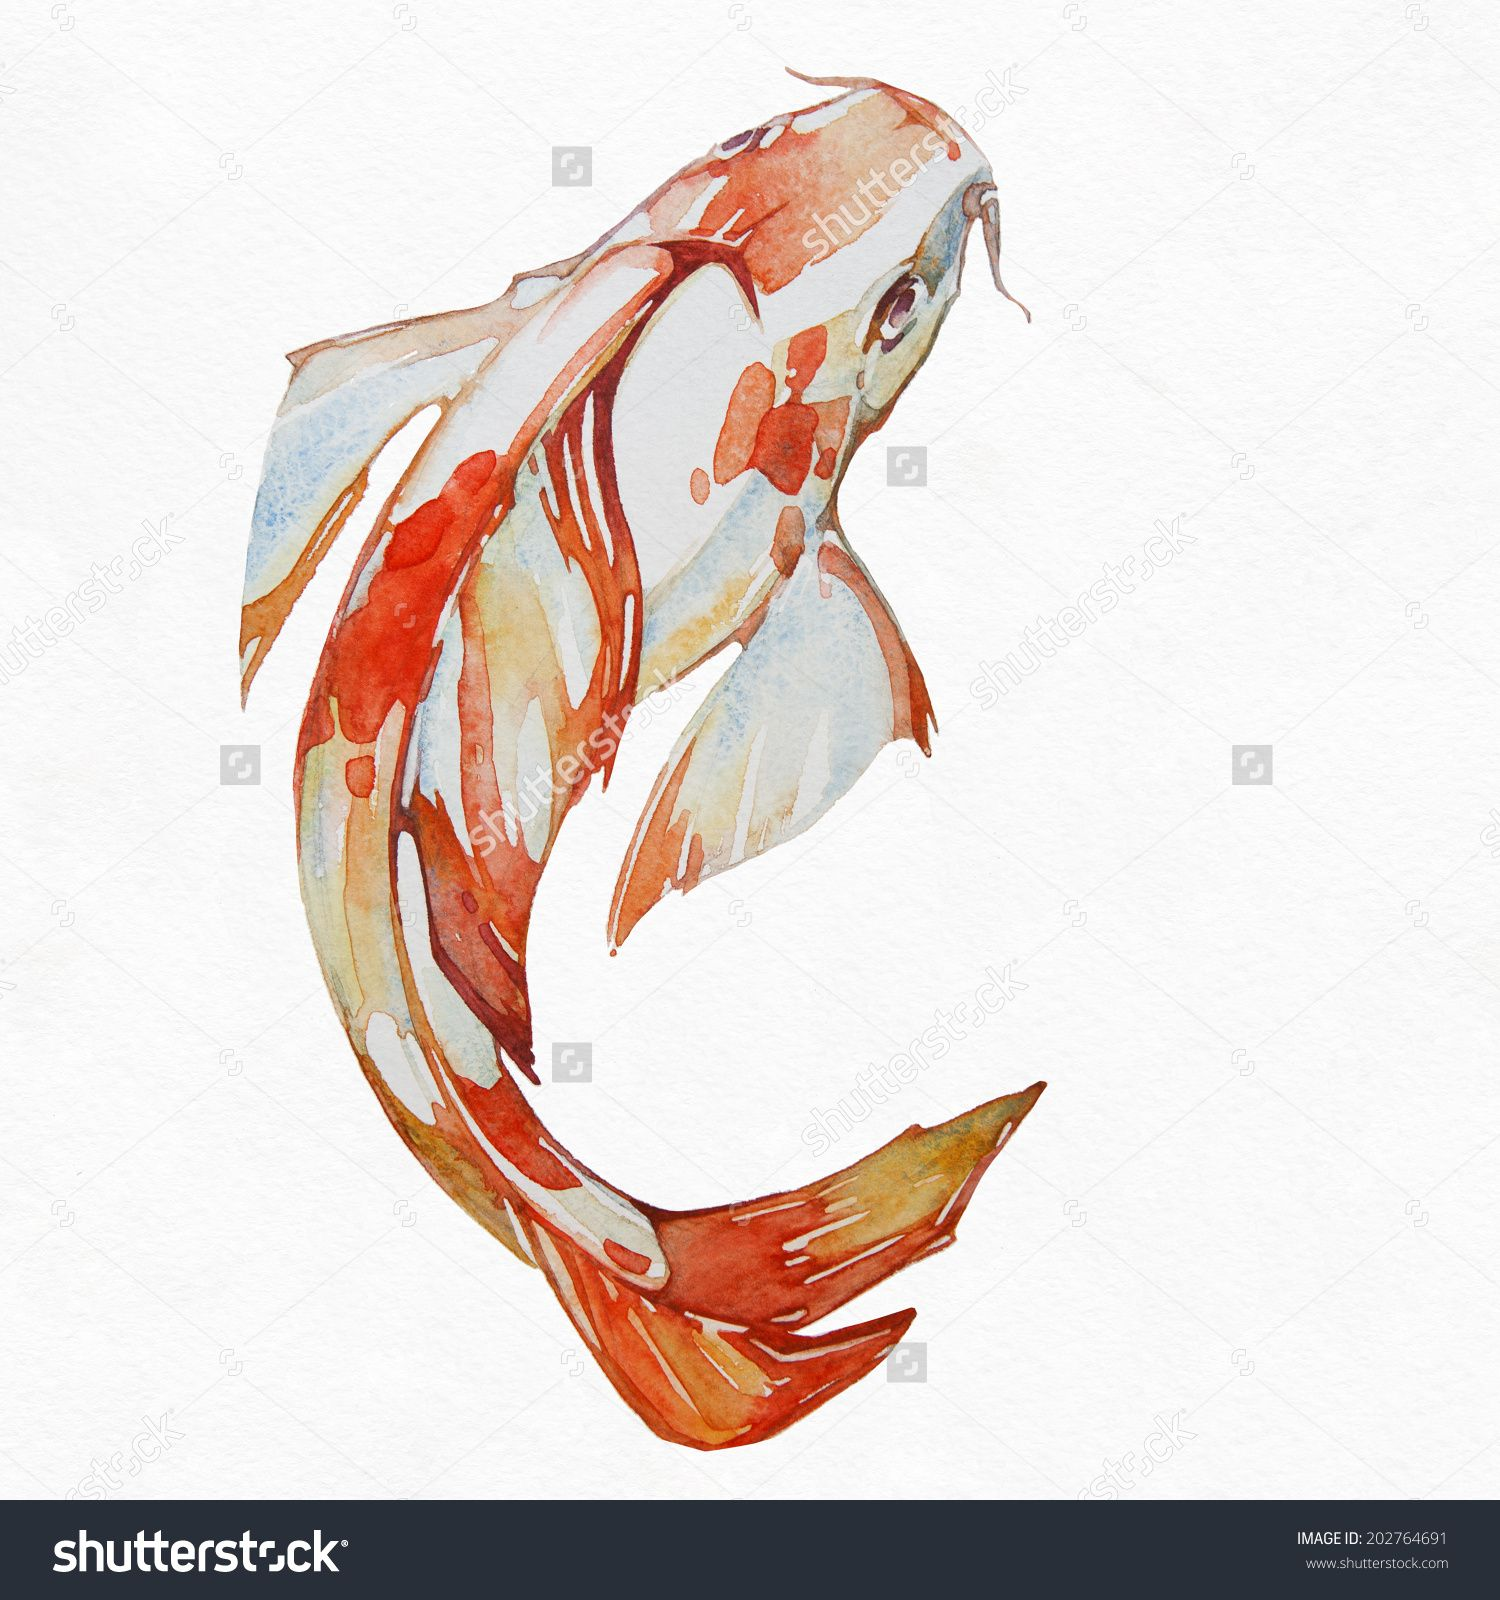 Resultado de imagen de koi fish watercolor koi fish for Japanese koi carp fish